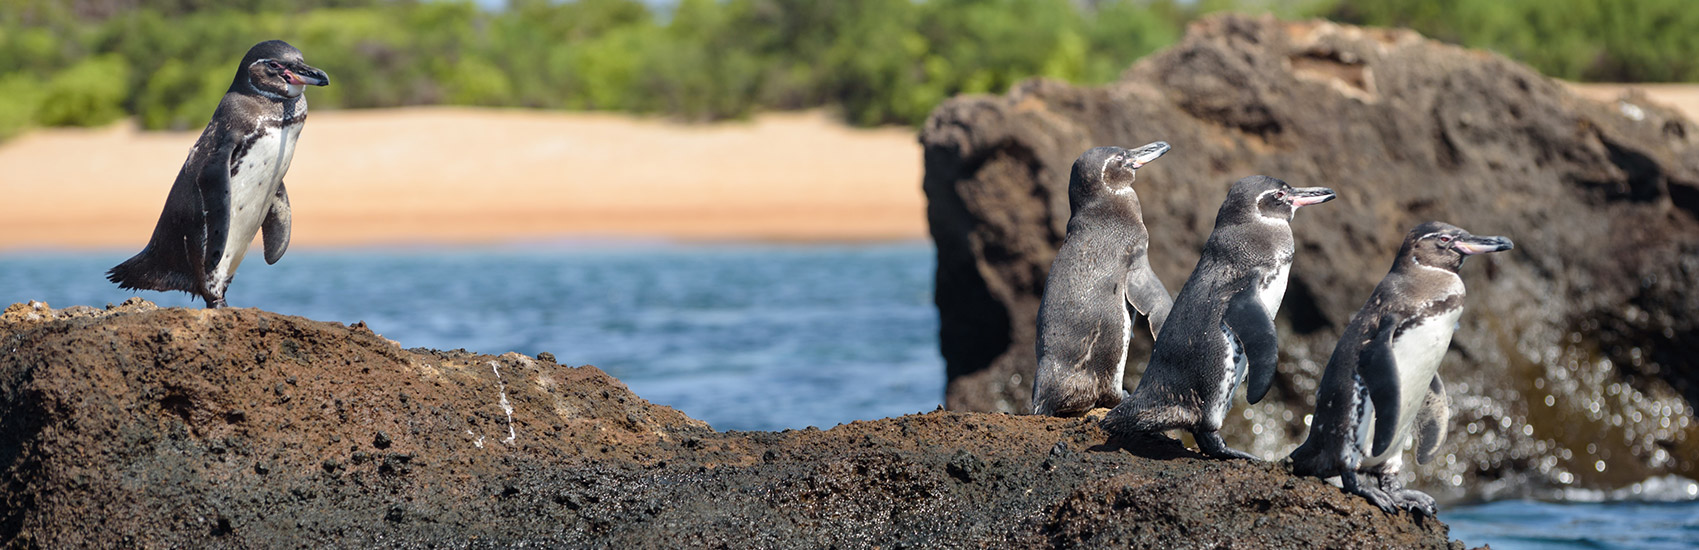 When to explore the Galapagos Islands 4